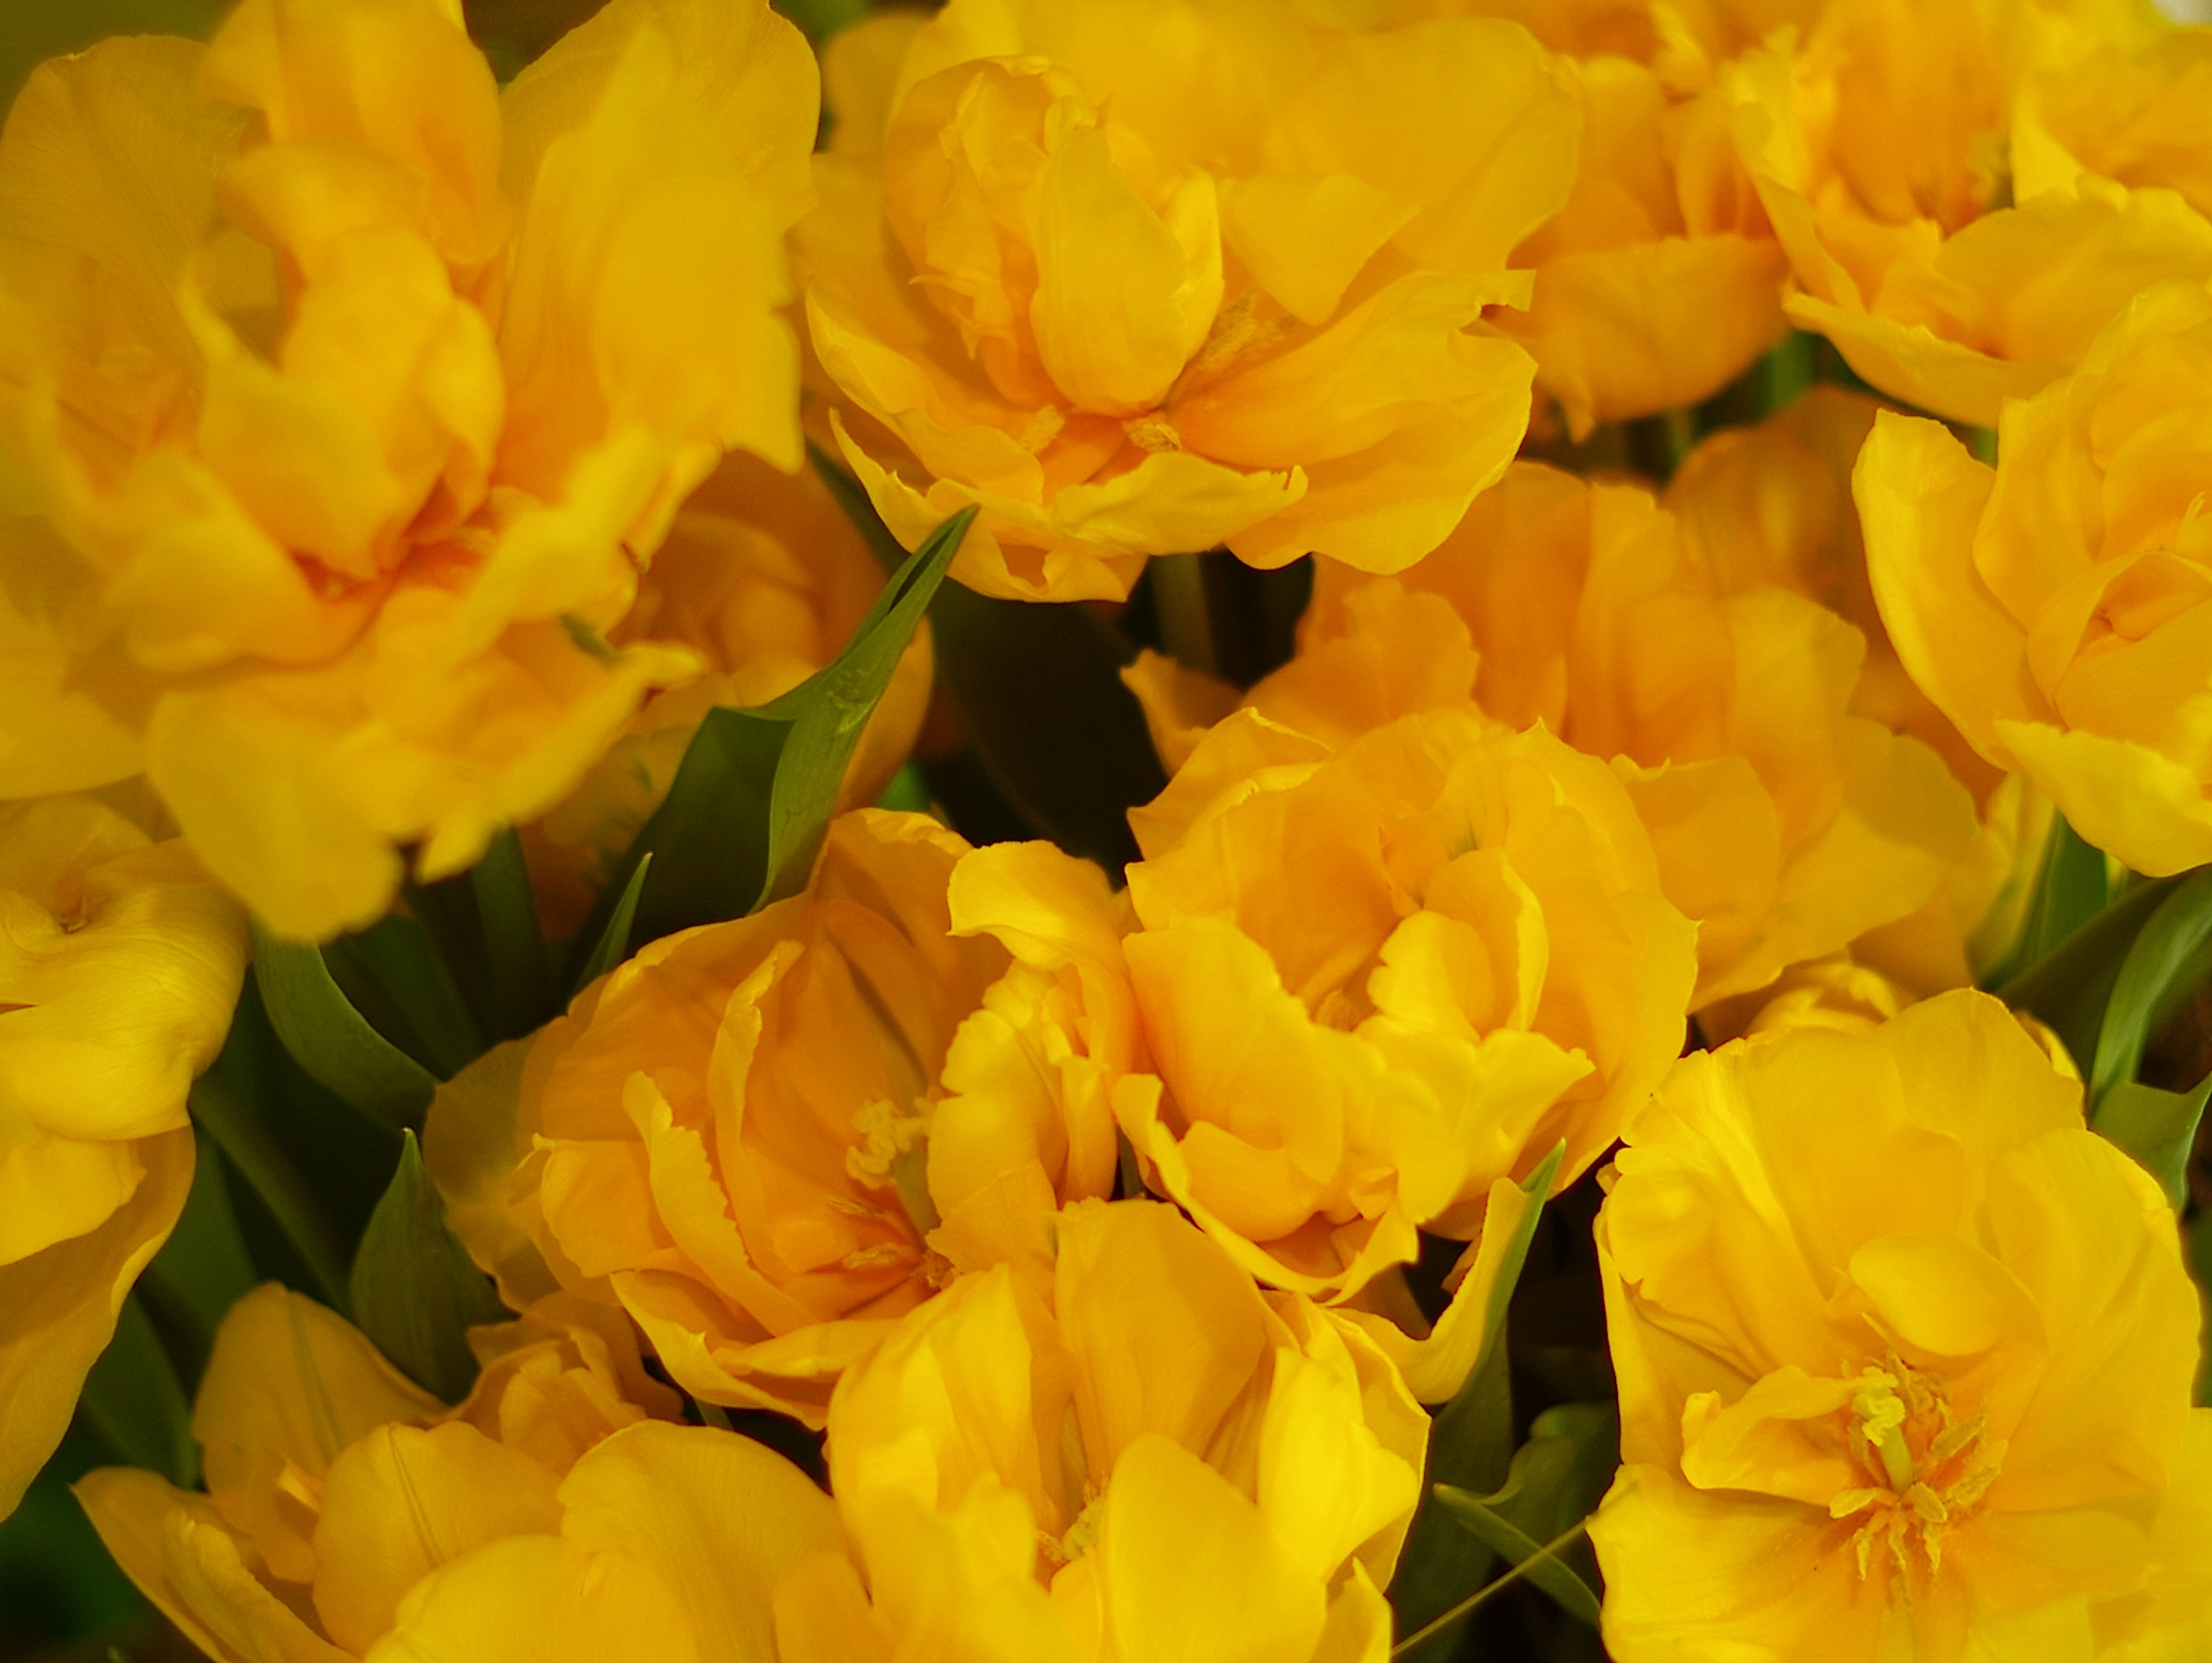 lotsoyellowtulips.jpg